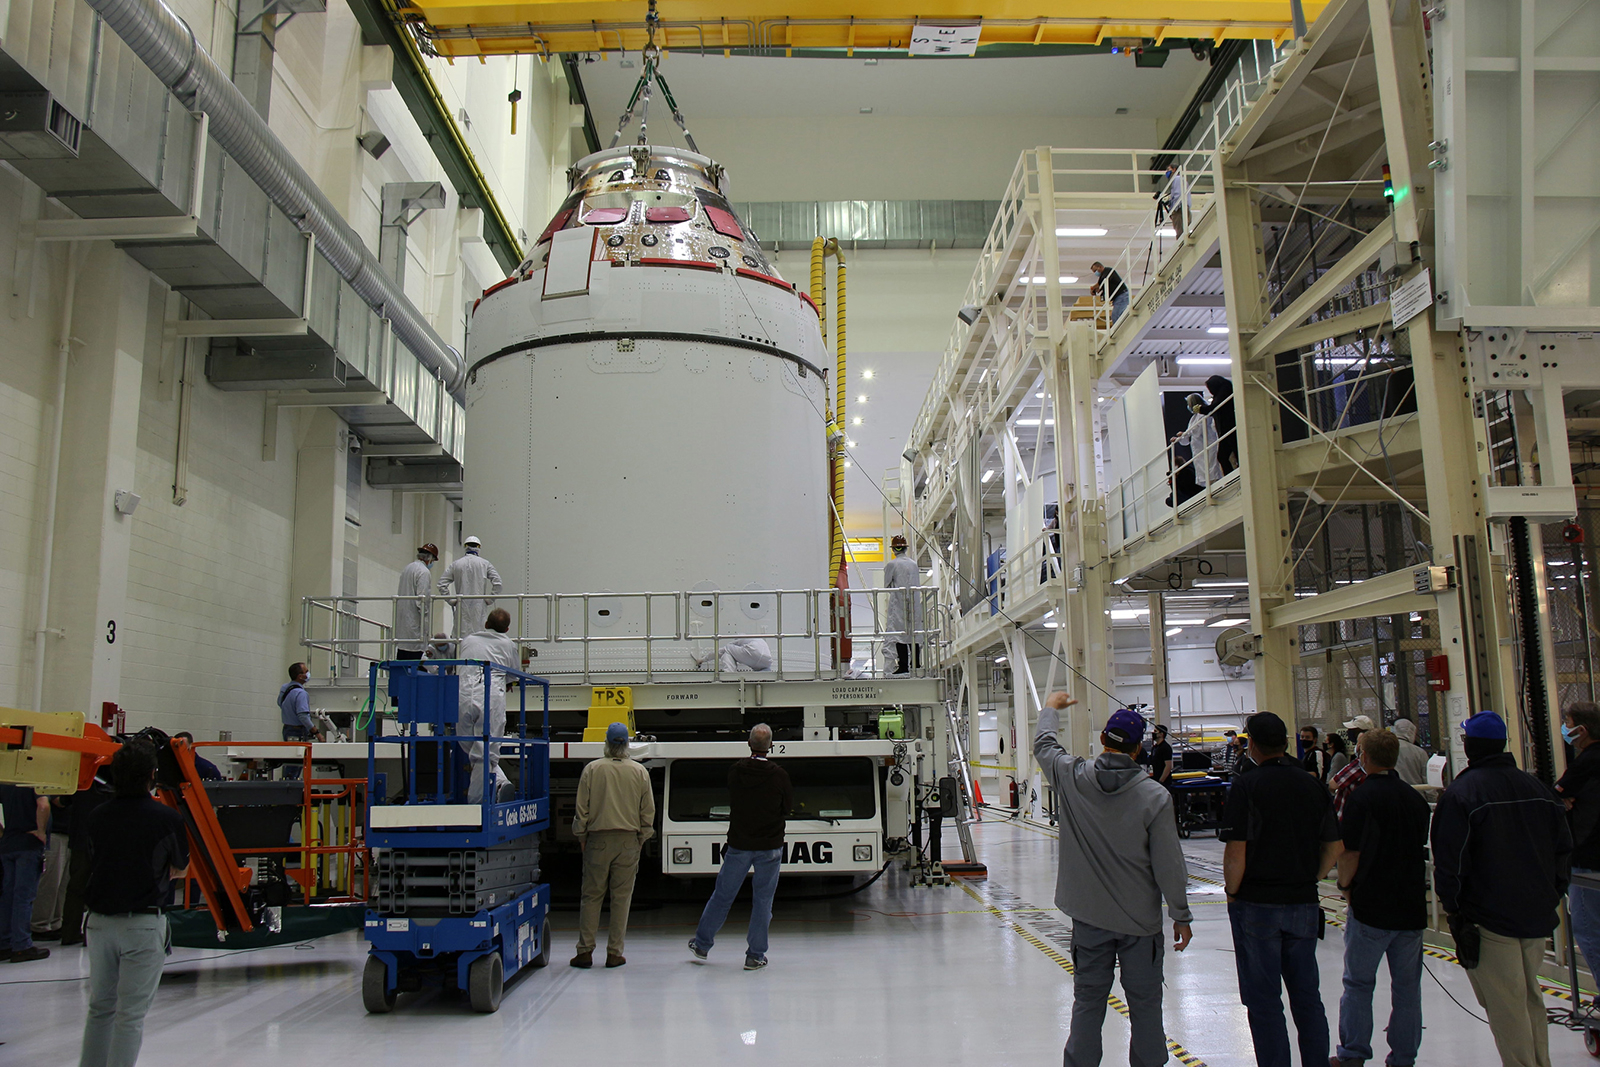 NASA's Orion spacecraft is ready to fly to the Moon – Yahoo News Australia